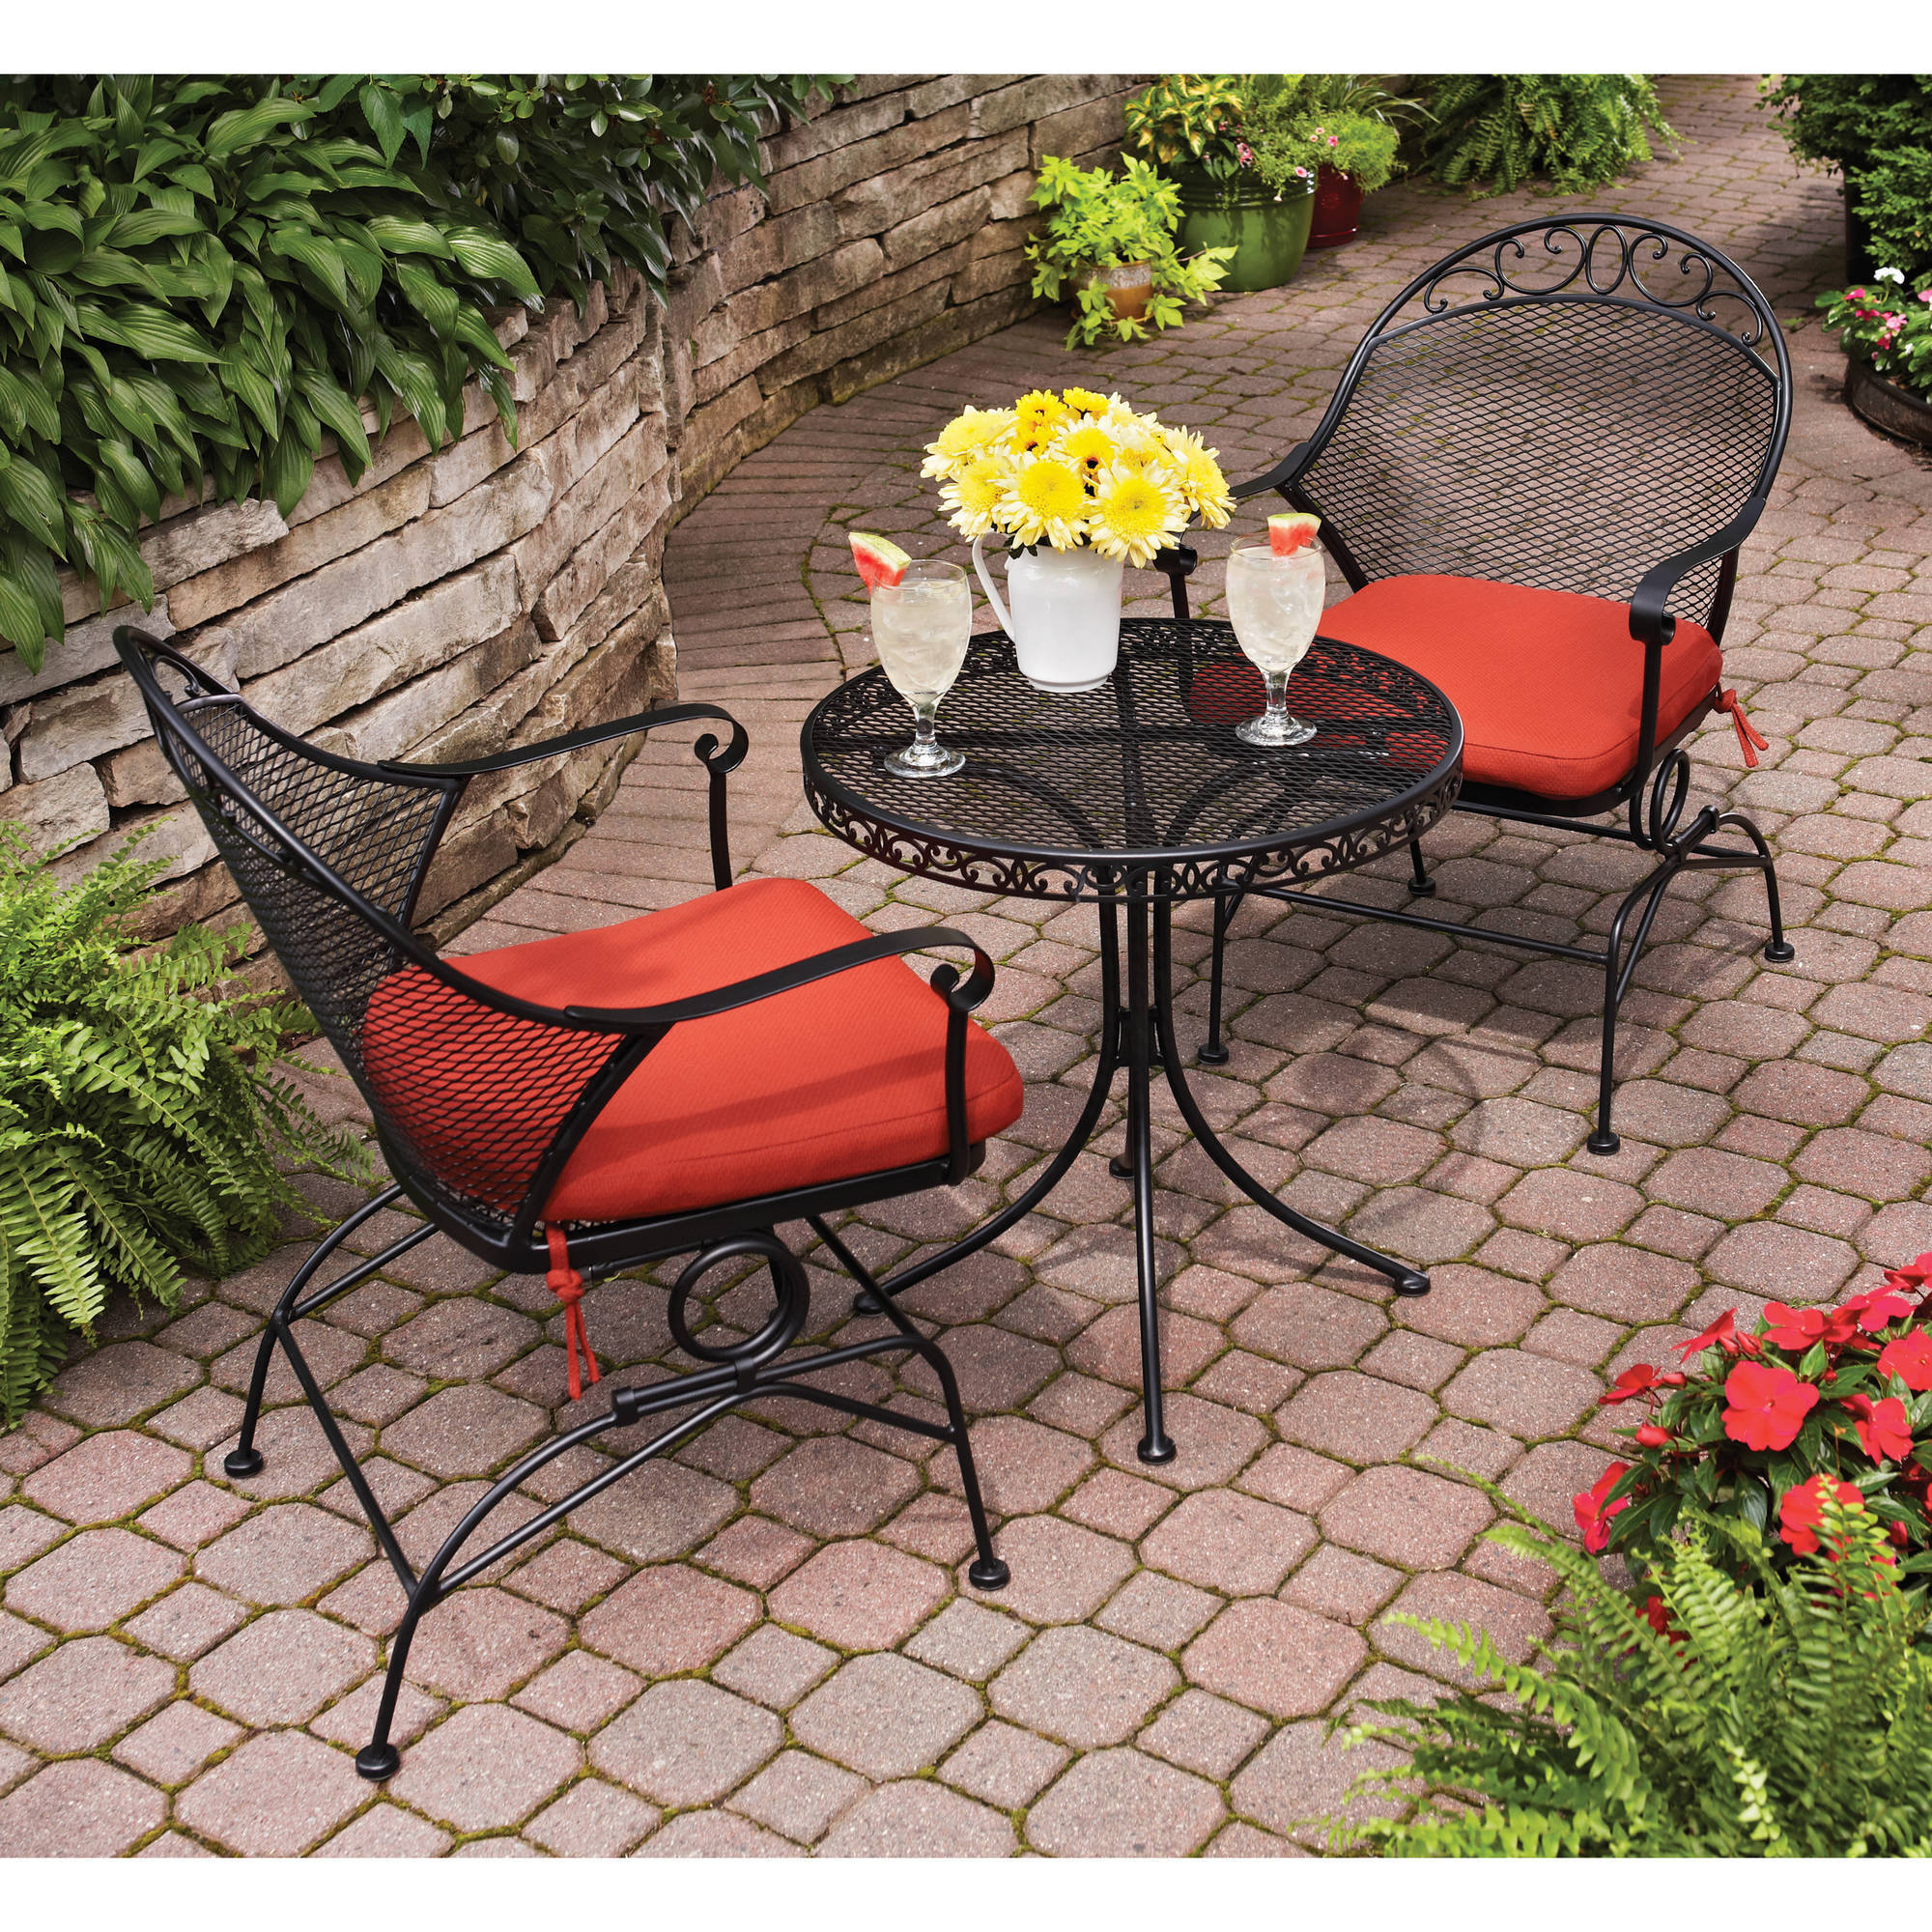 Better Homes and Gardens Clayton Court 3-Piece Motion Outdoor Bistro Set, Seats 2